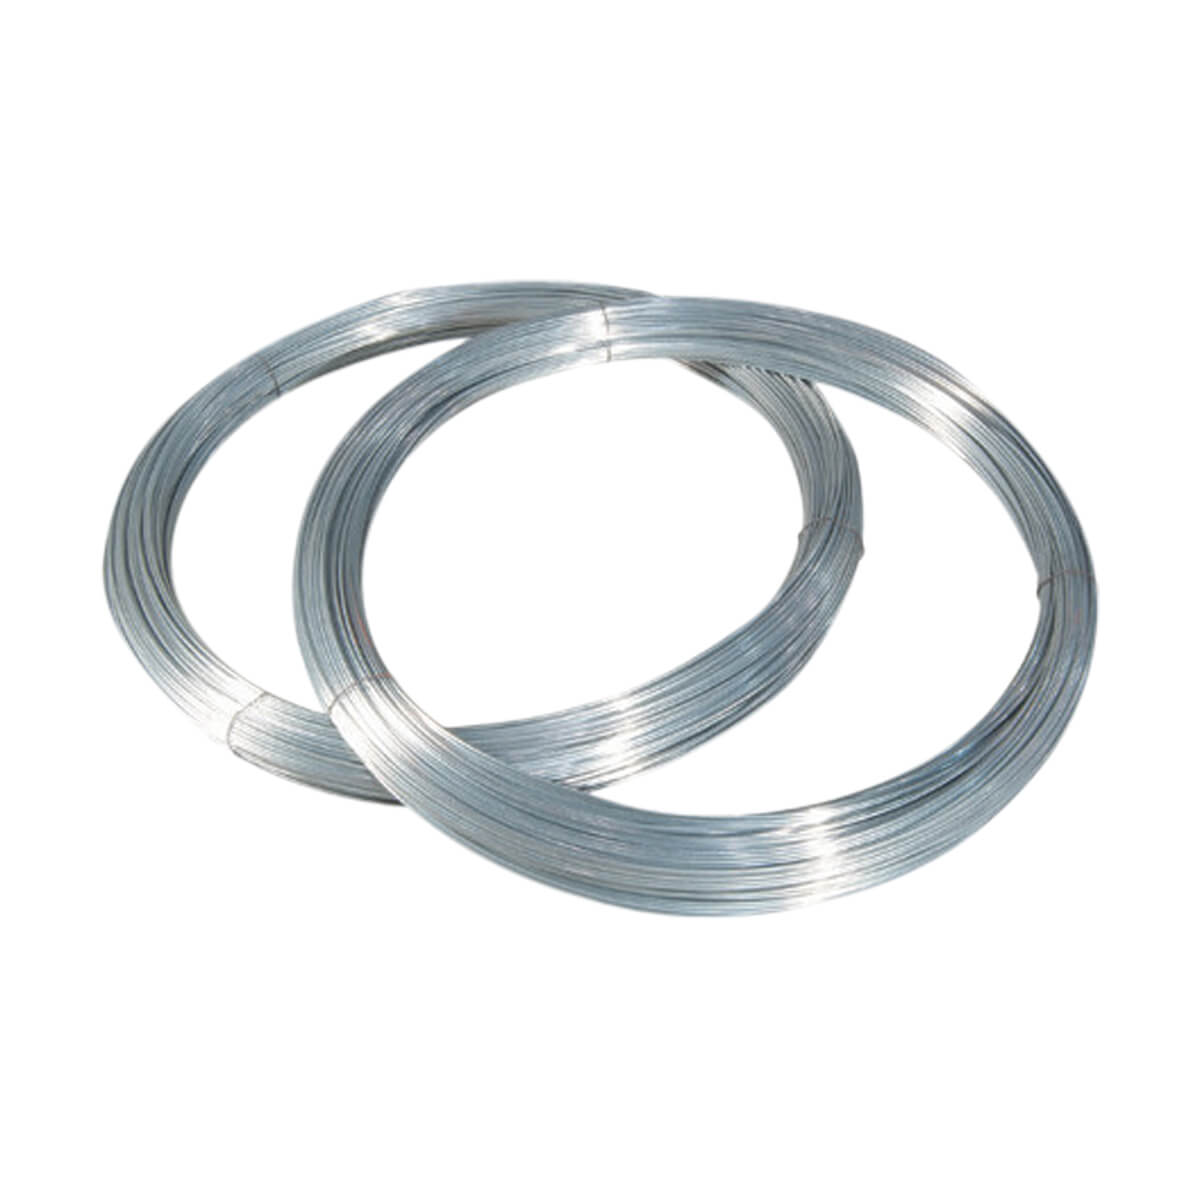 Galvanized Wire # 14 - 14GA - 50 lb.